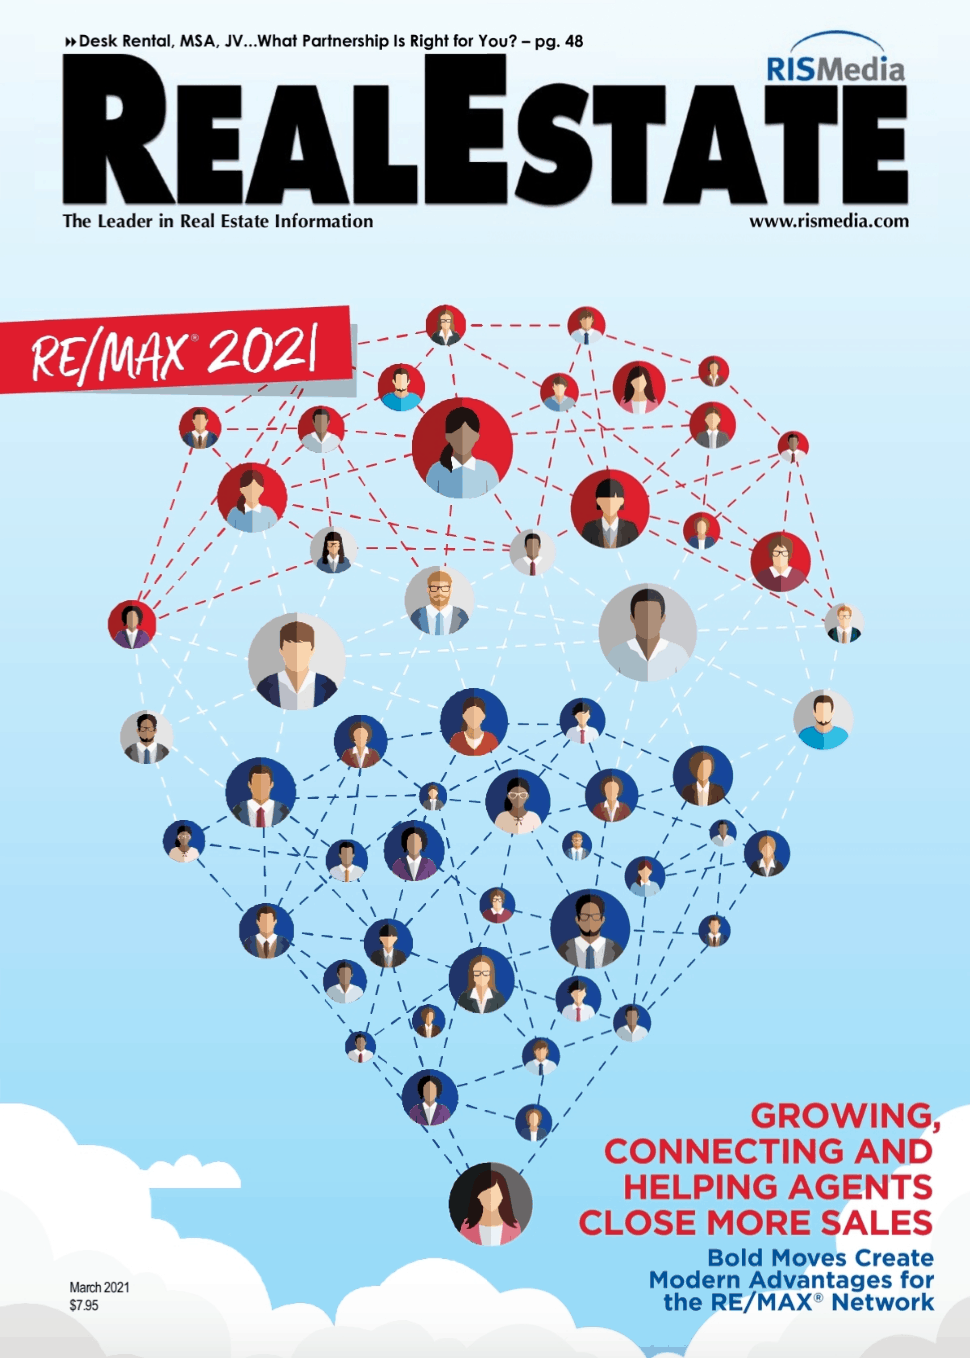 rismedia march 2021 digital magazine cover